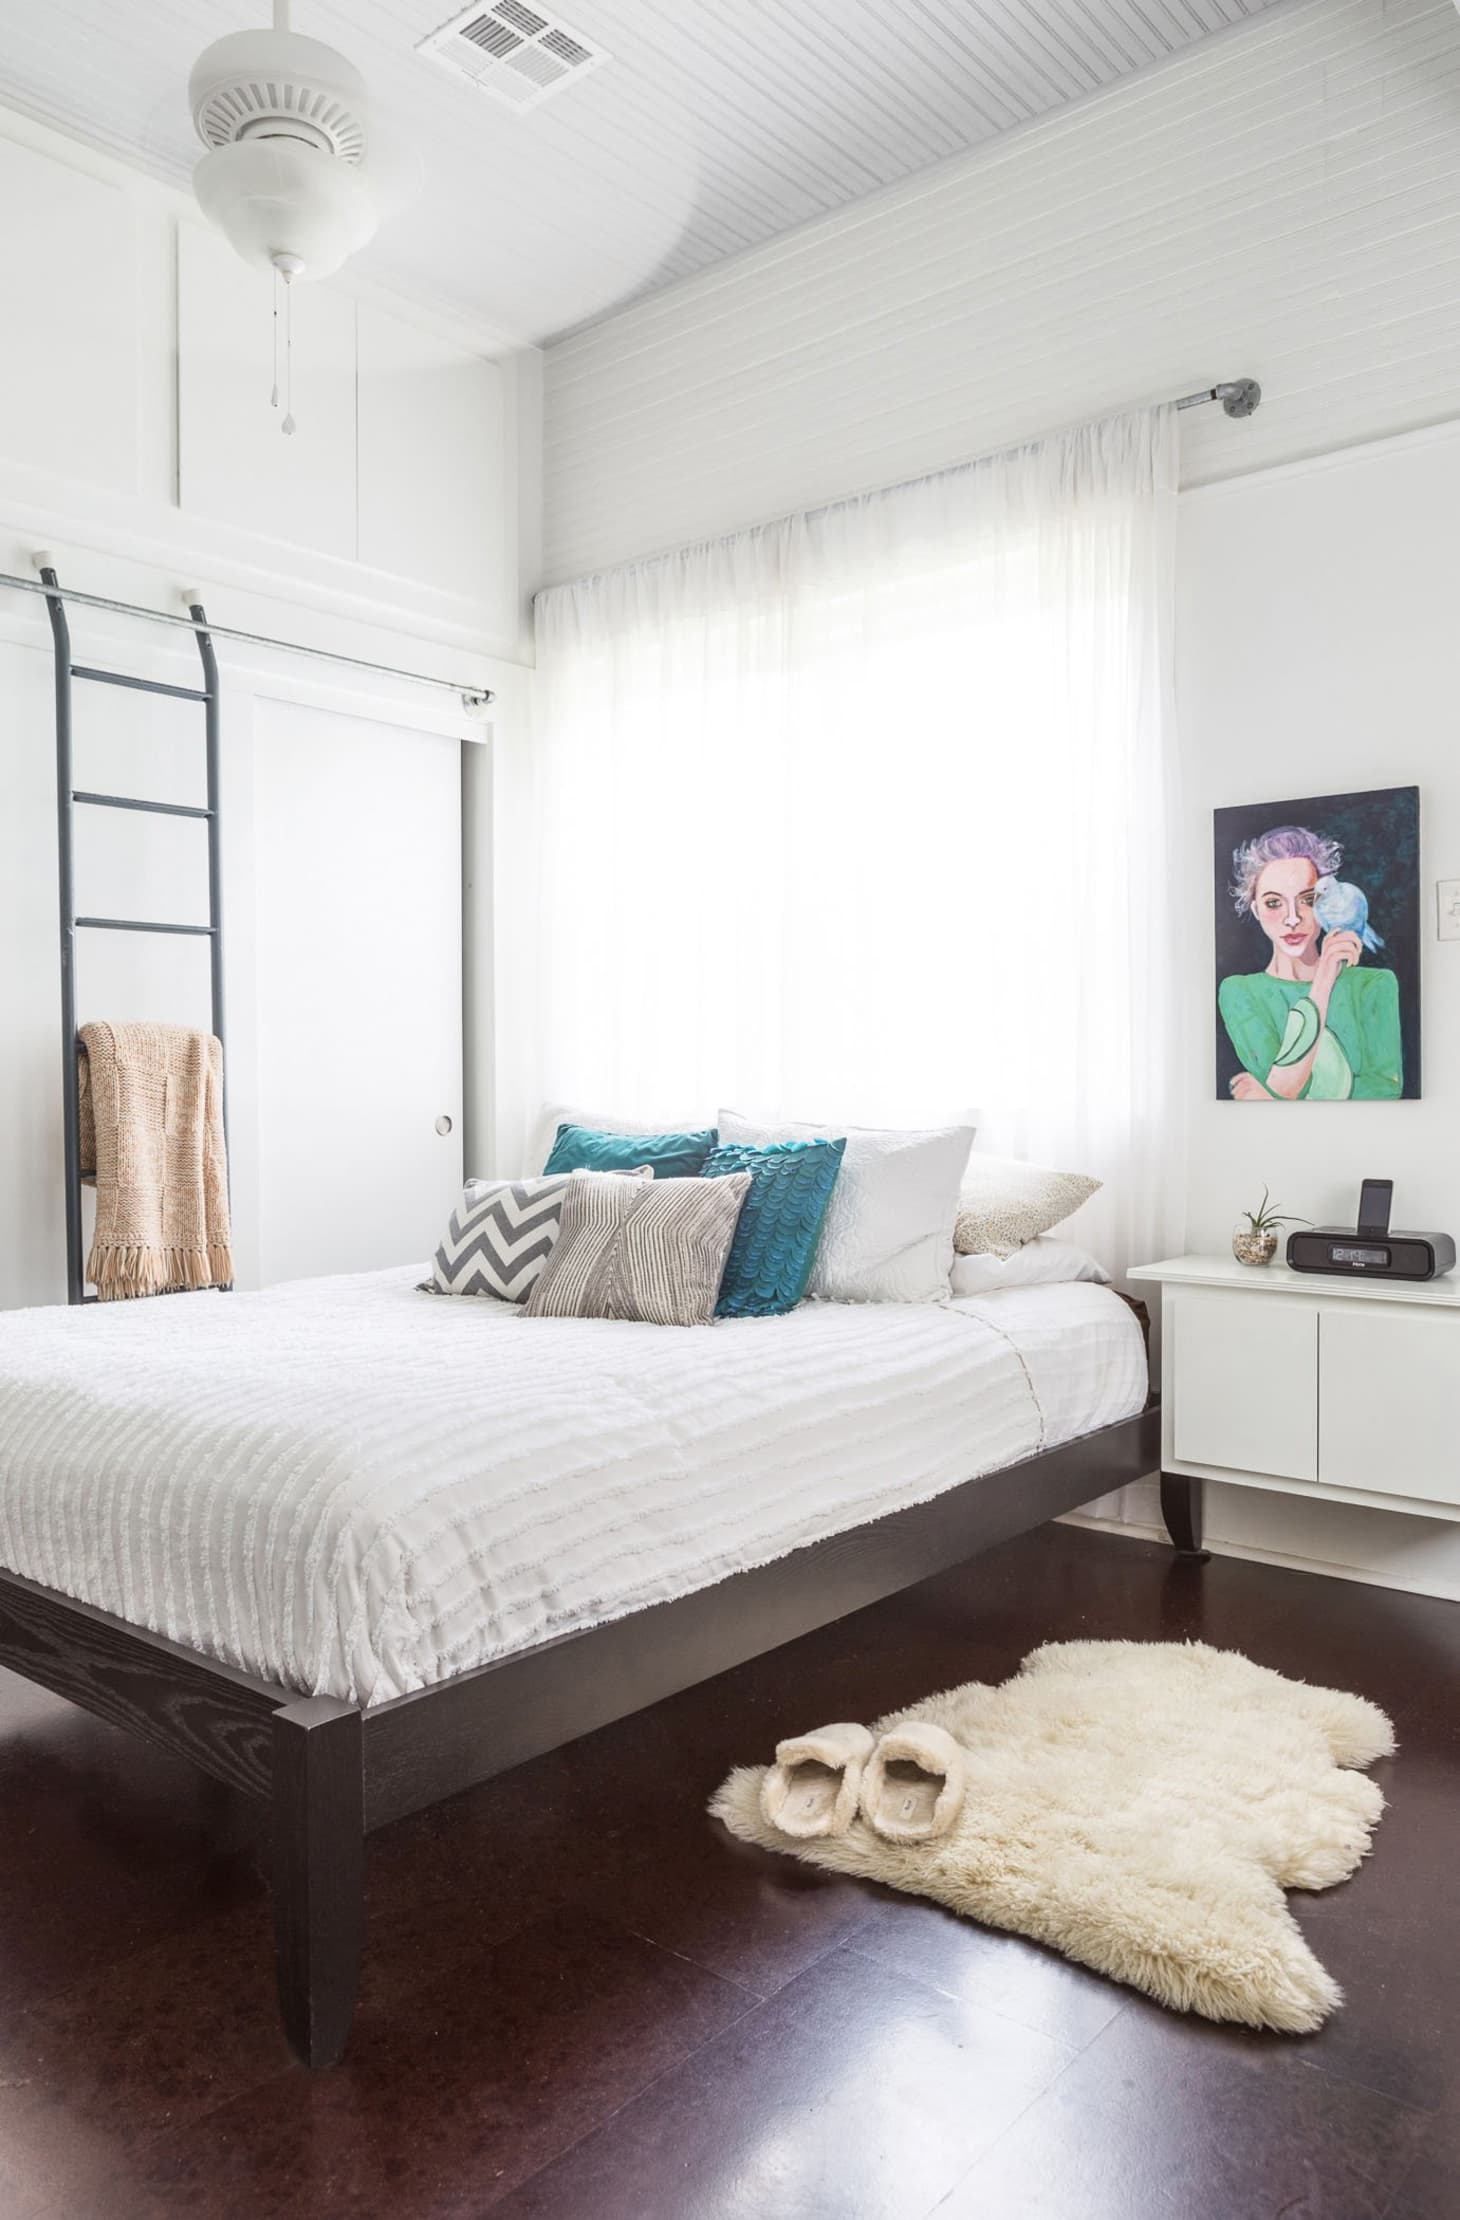 Minimalist Bedroom Ideas (That Aren't Boring) | Apartment ... on Minimalist Bedroom Ideas  id=42635